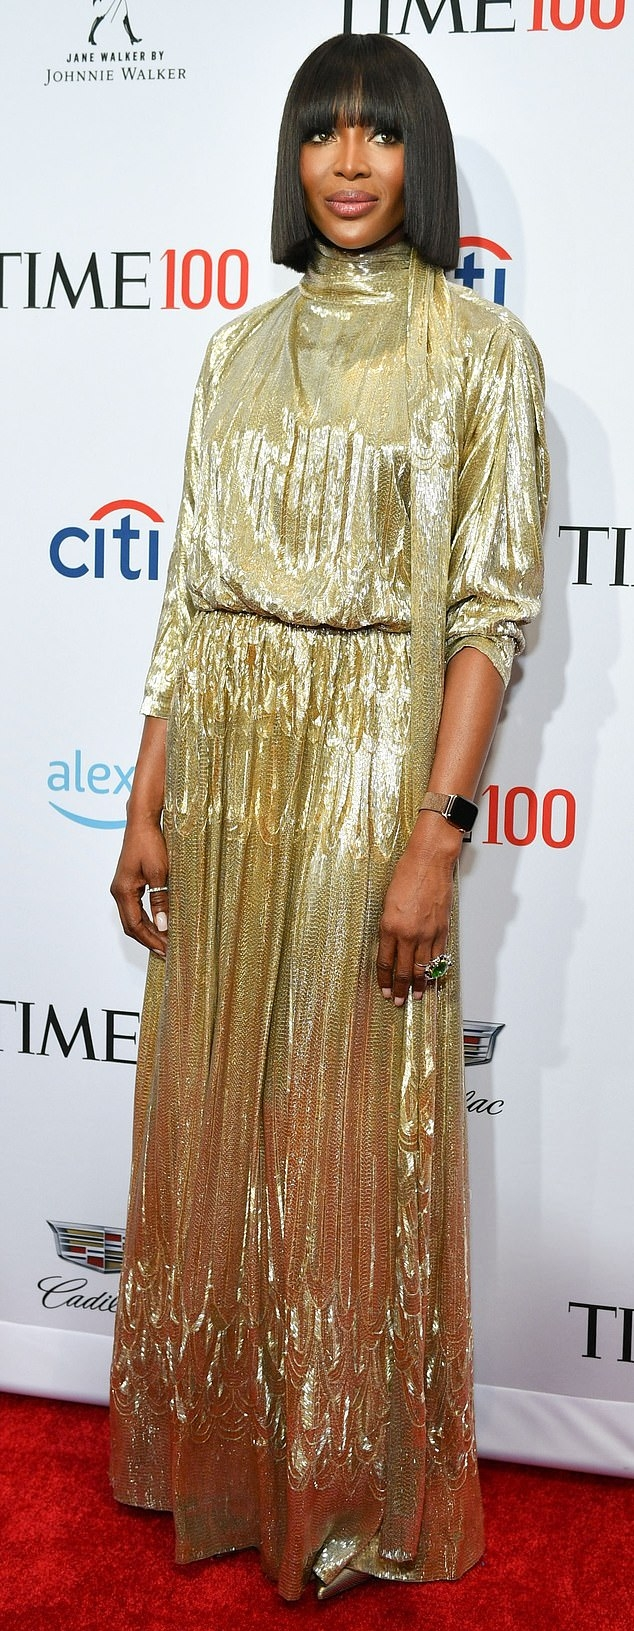 Naomi Campbell wearing a Flattering shiny gold Valentino dress with a sequin detailing material, 3/4 sleeves, gathered shoulder, embroidered and a turtleneck